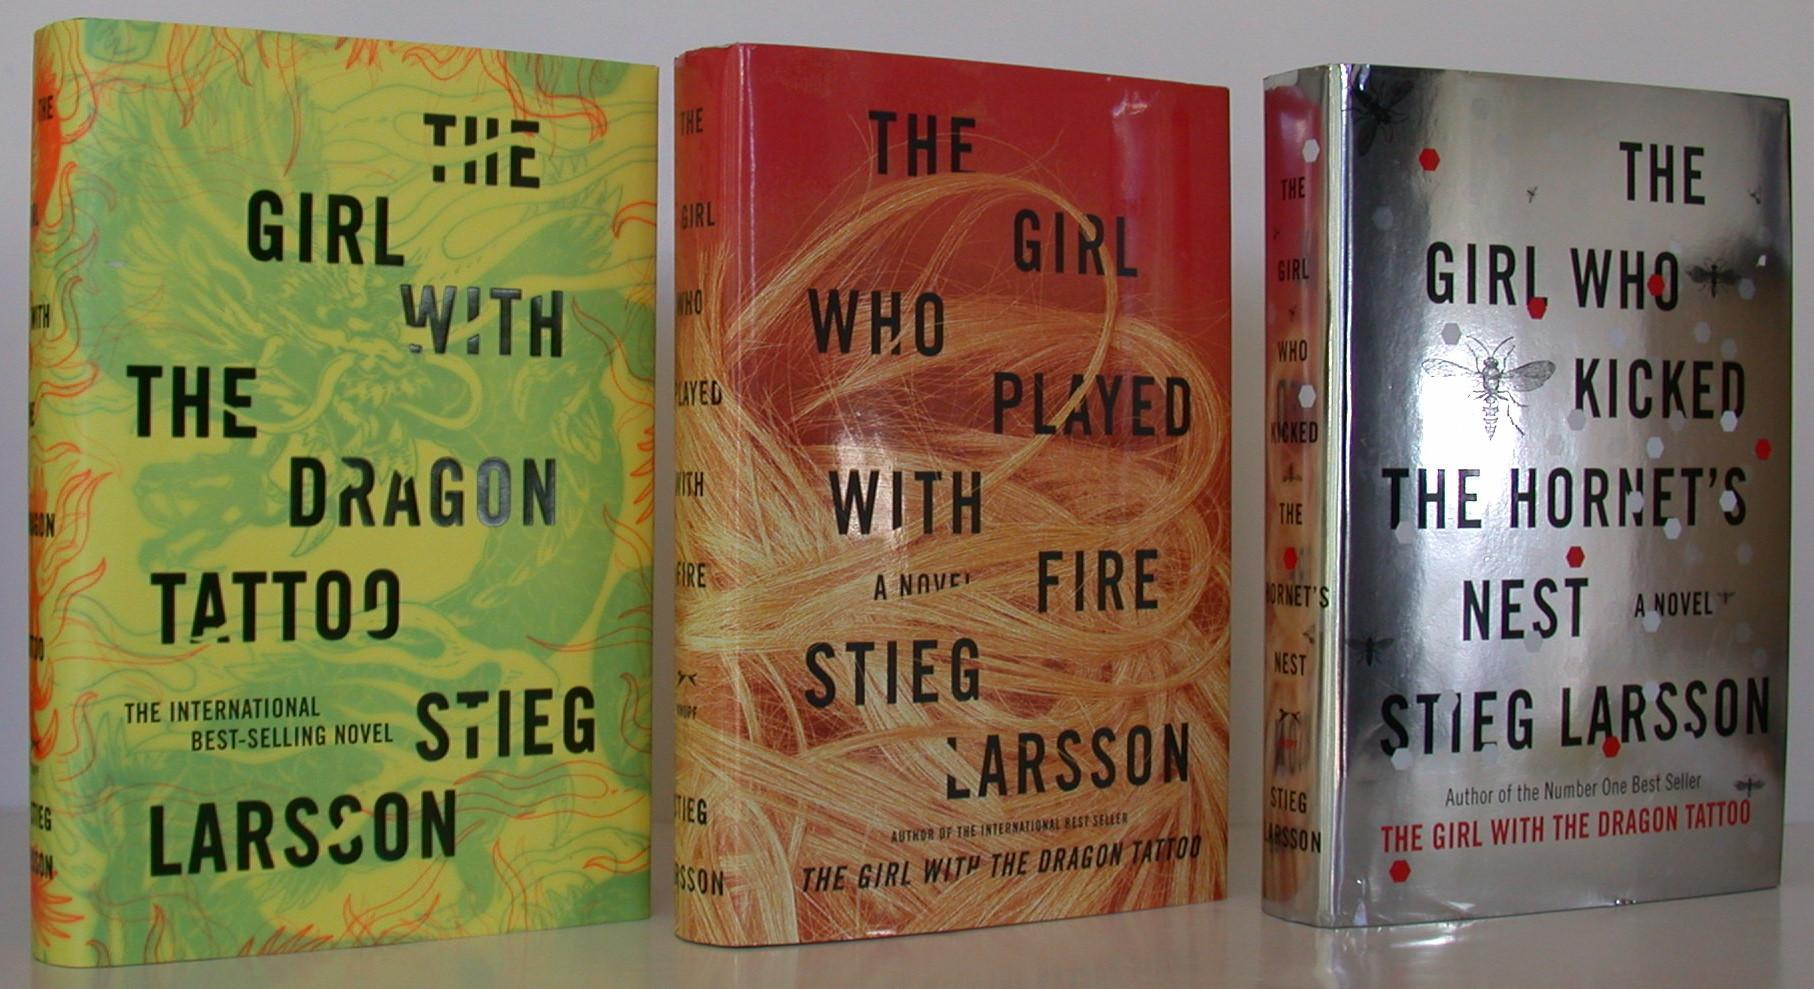 The Girl with the Dragon Tattoo Trilogy Larsson, Stieg